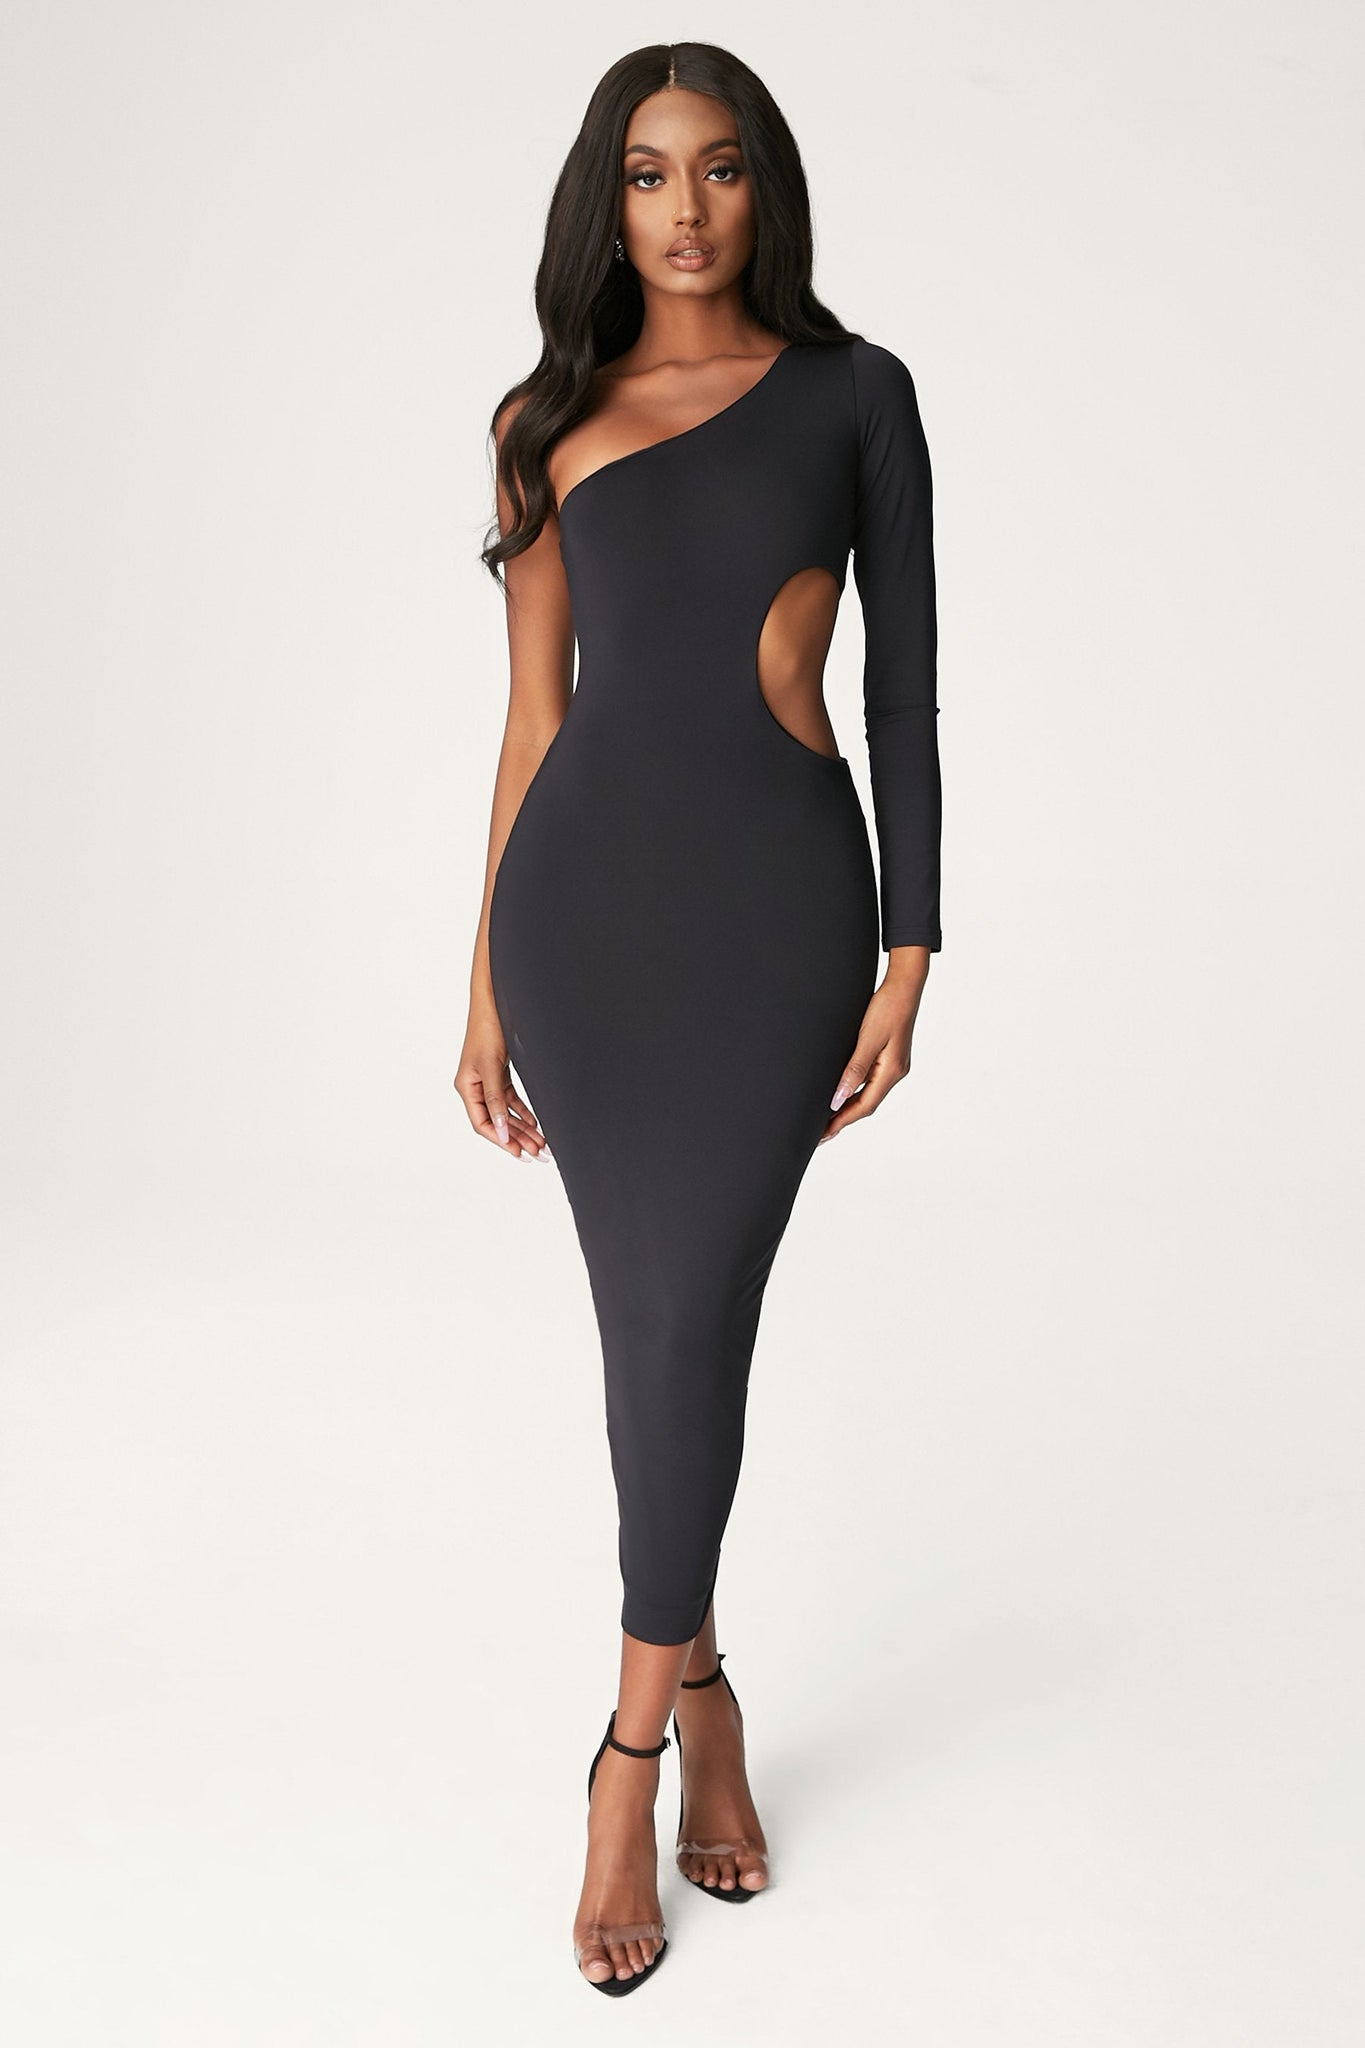 Bexley One Shoulder Cut Out Midi Dress - Black - MESHKI